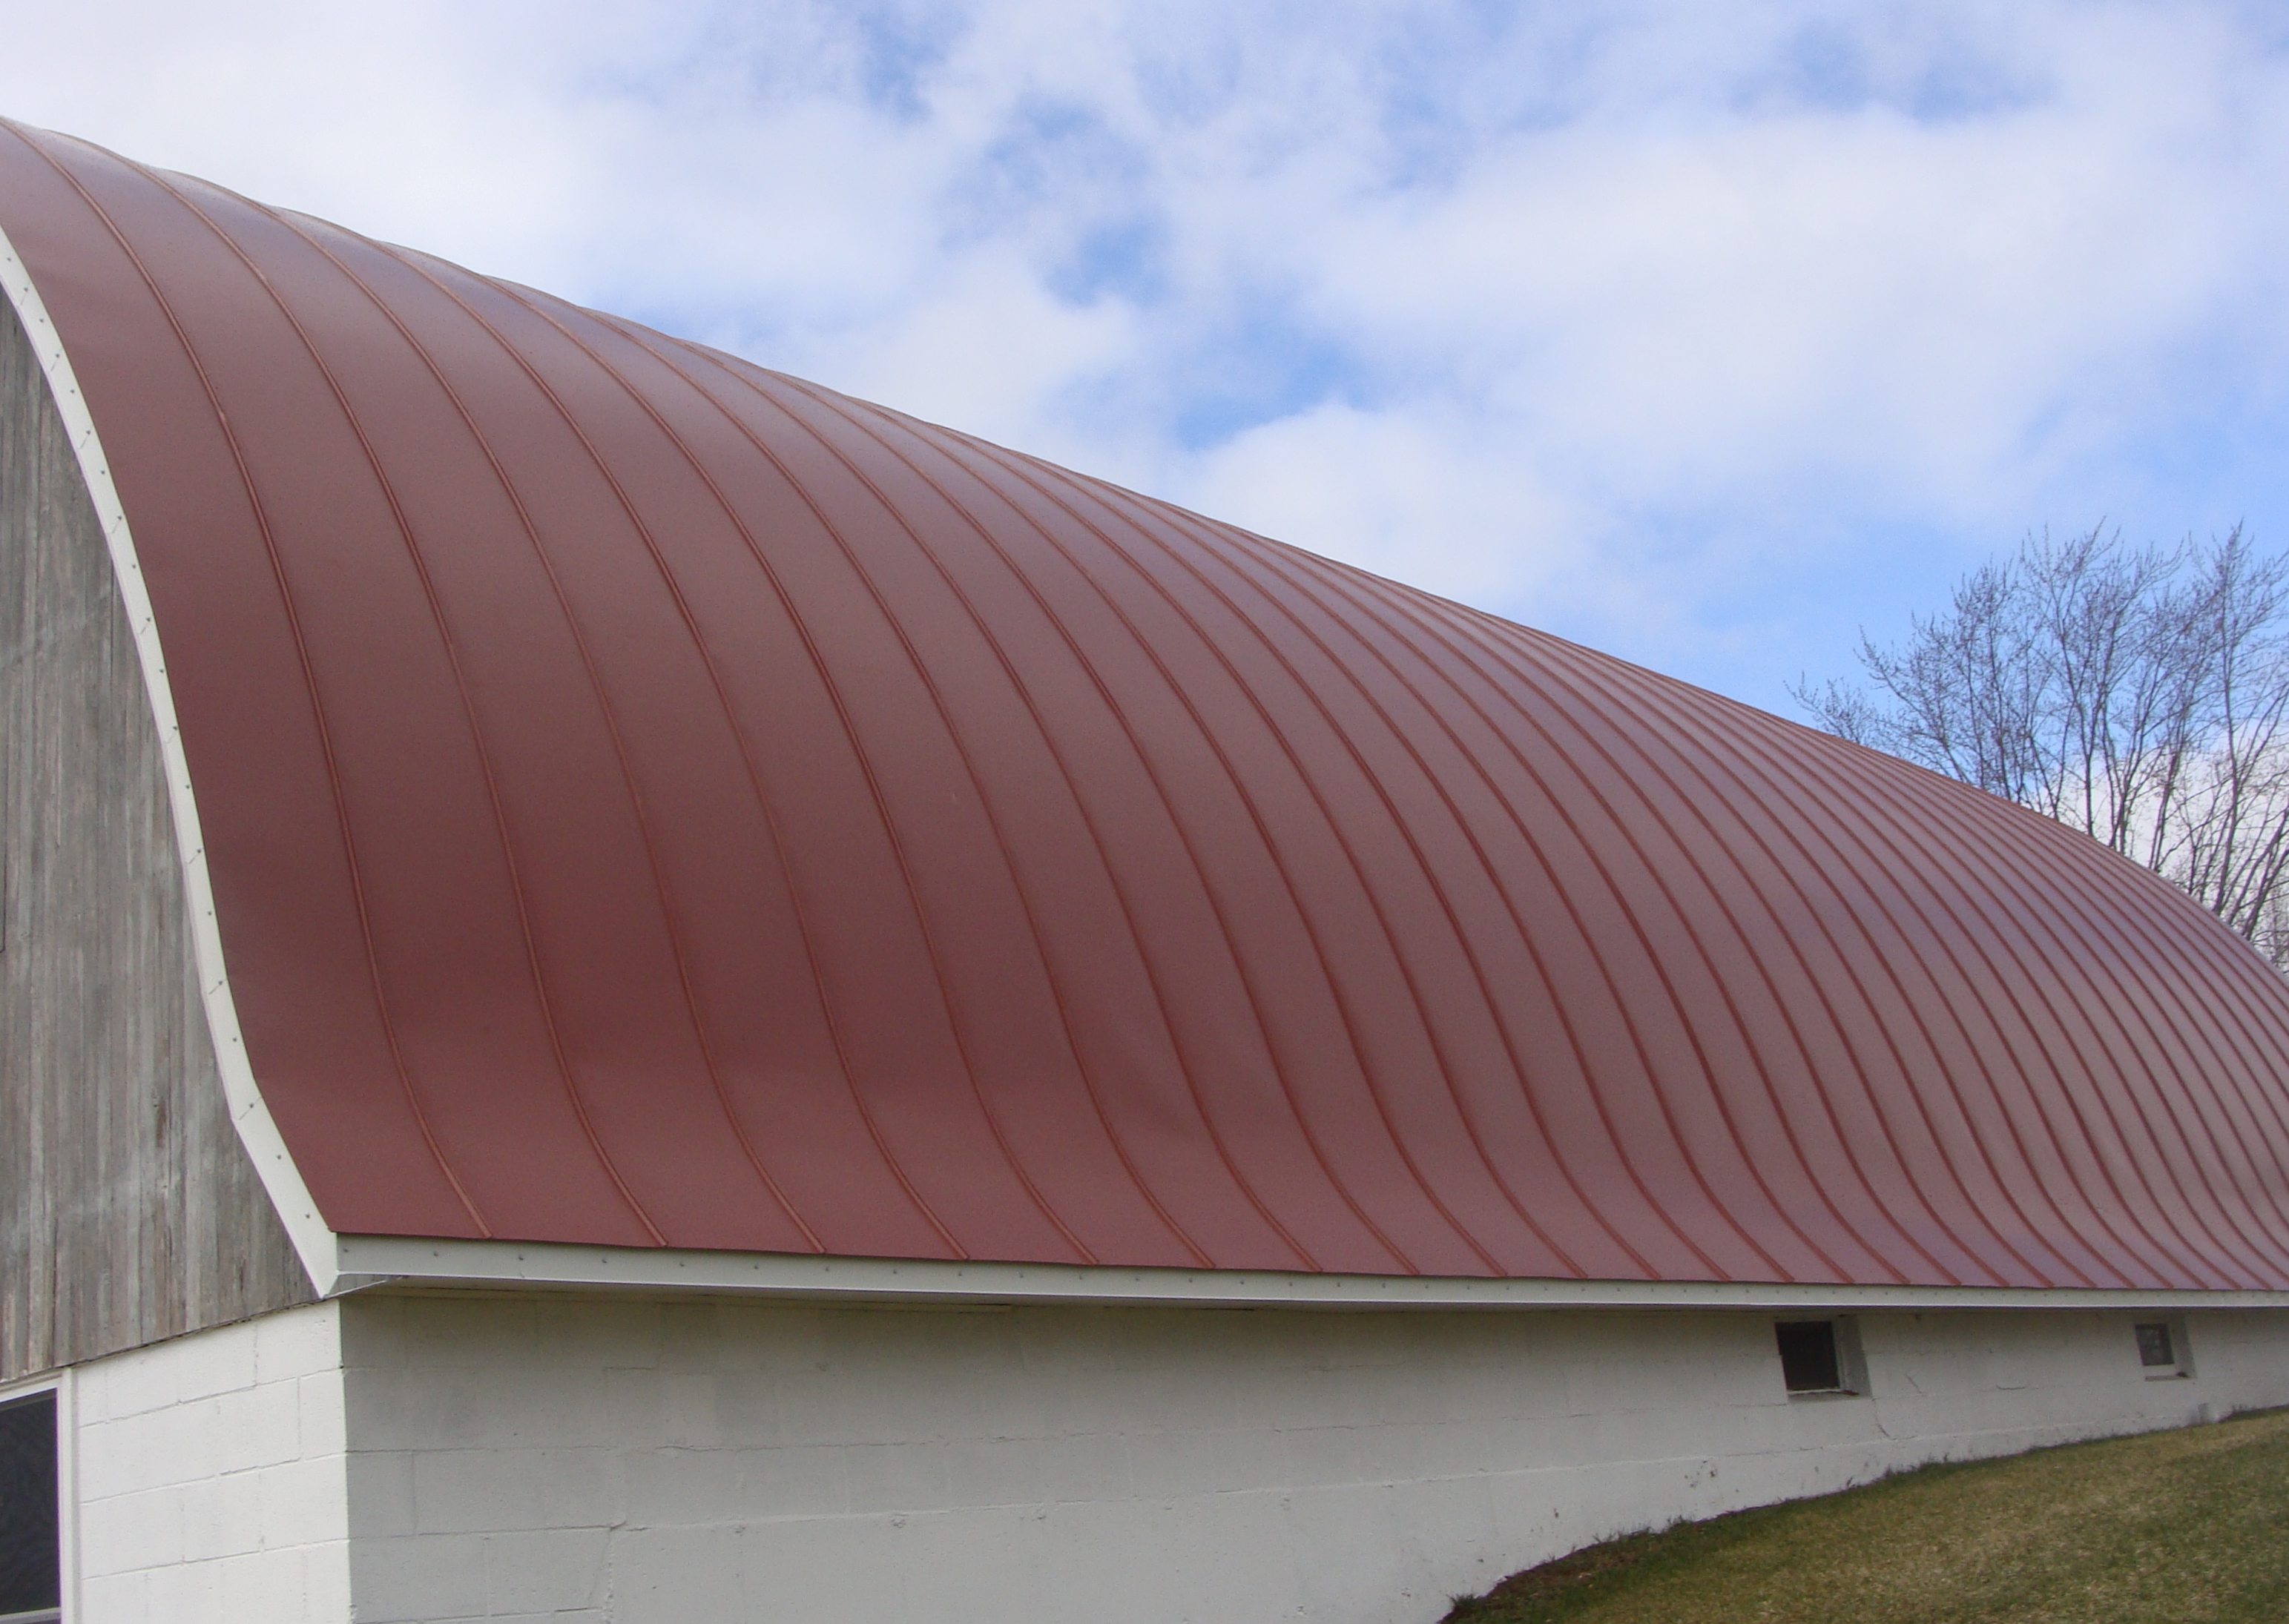 Quonset barn agricultural double lock standing seam sheet metal roofing dark colonial red culpitt wisconsin iowa illinois minnesota north dakota